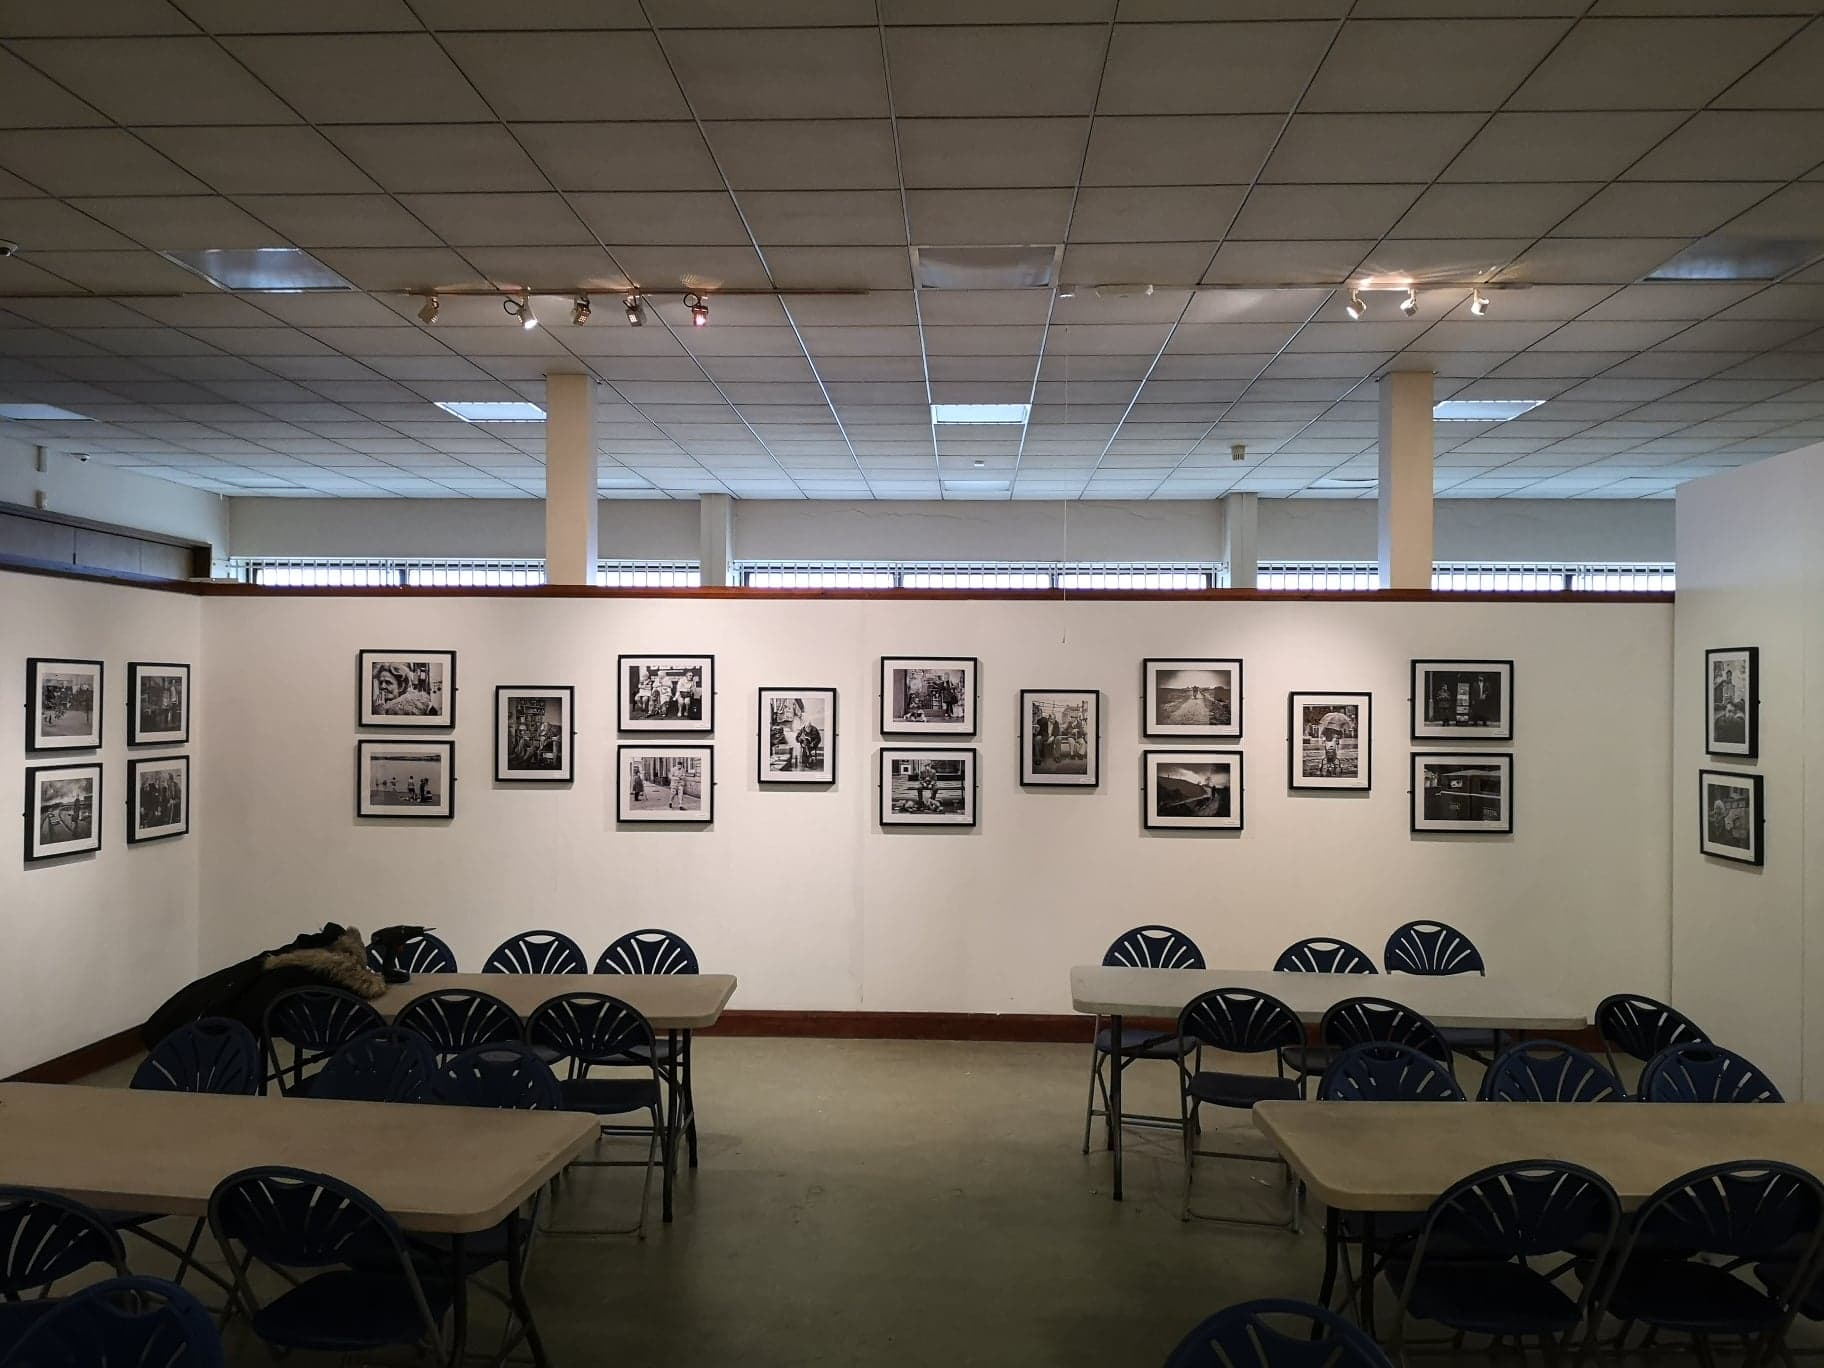 Exhibition at Doncaster finishes